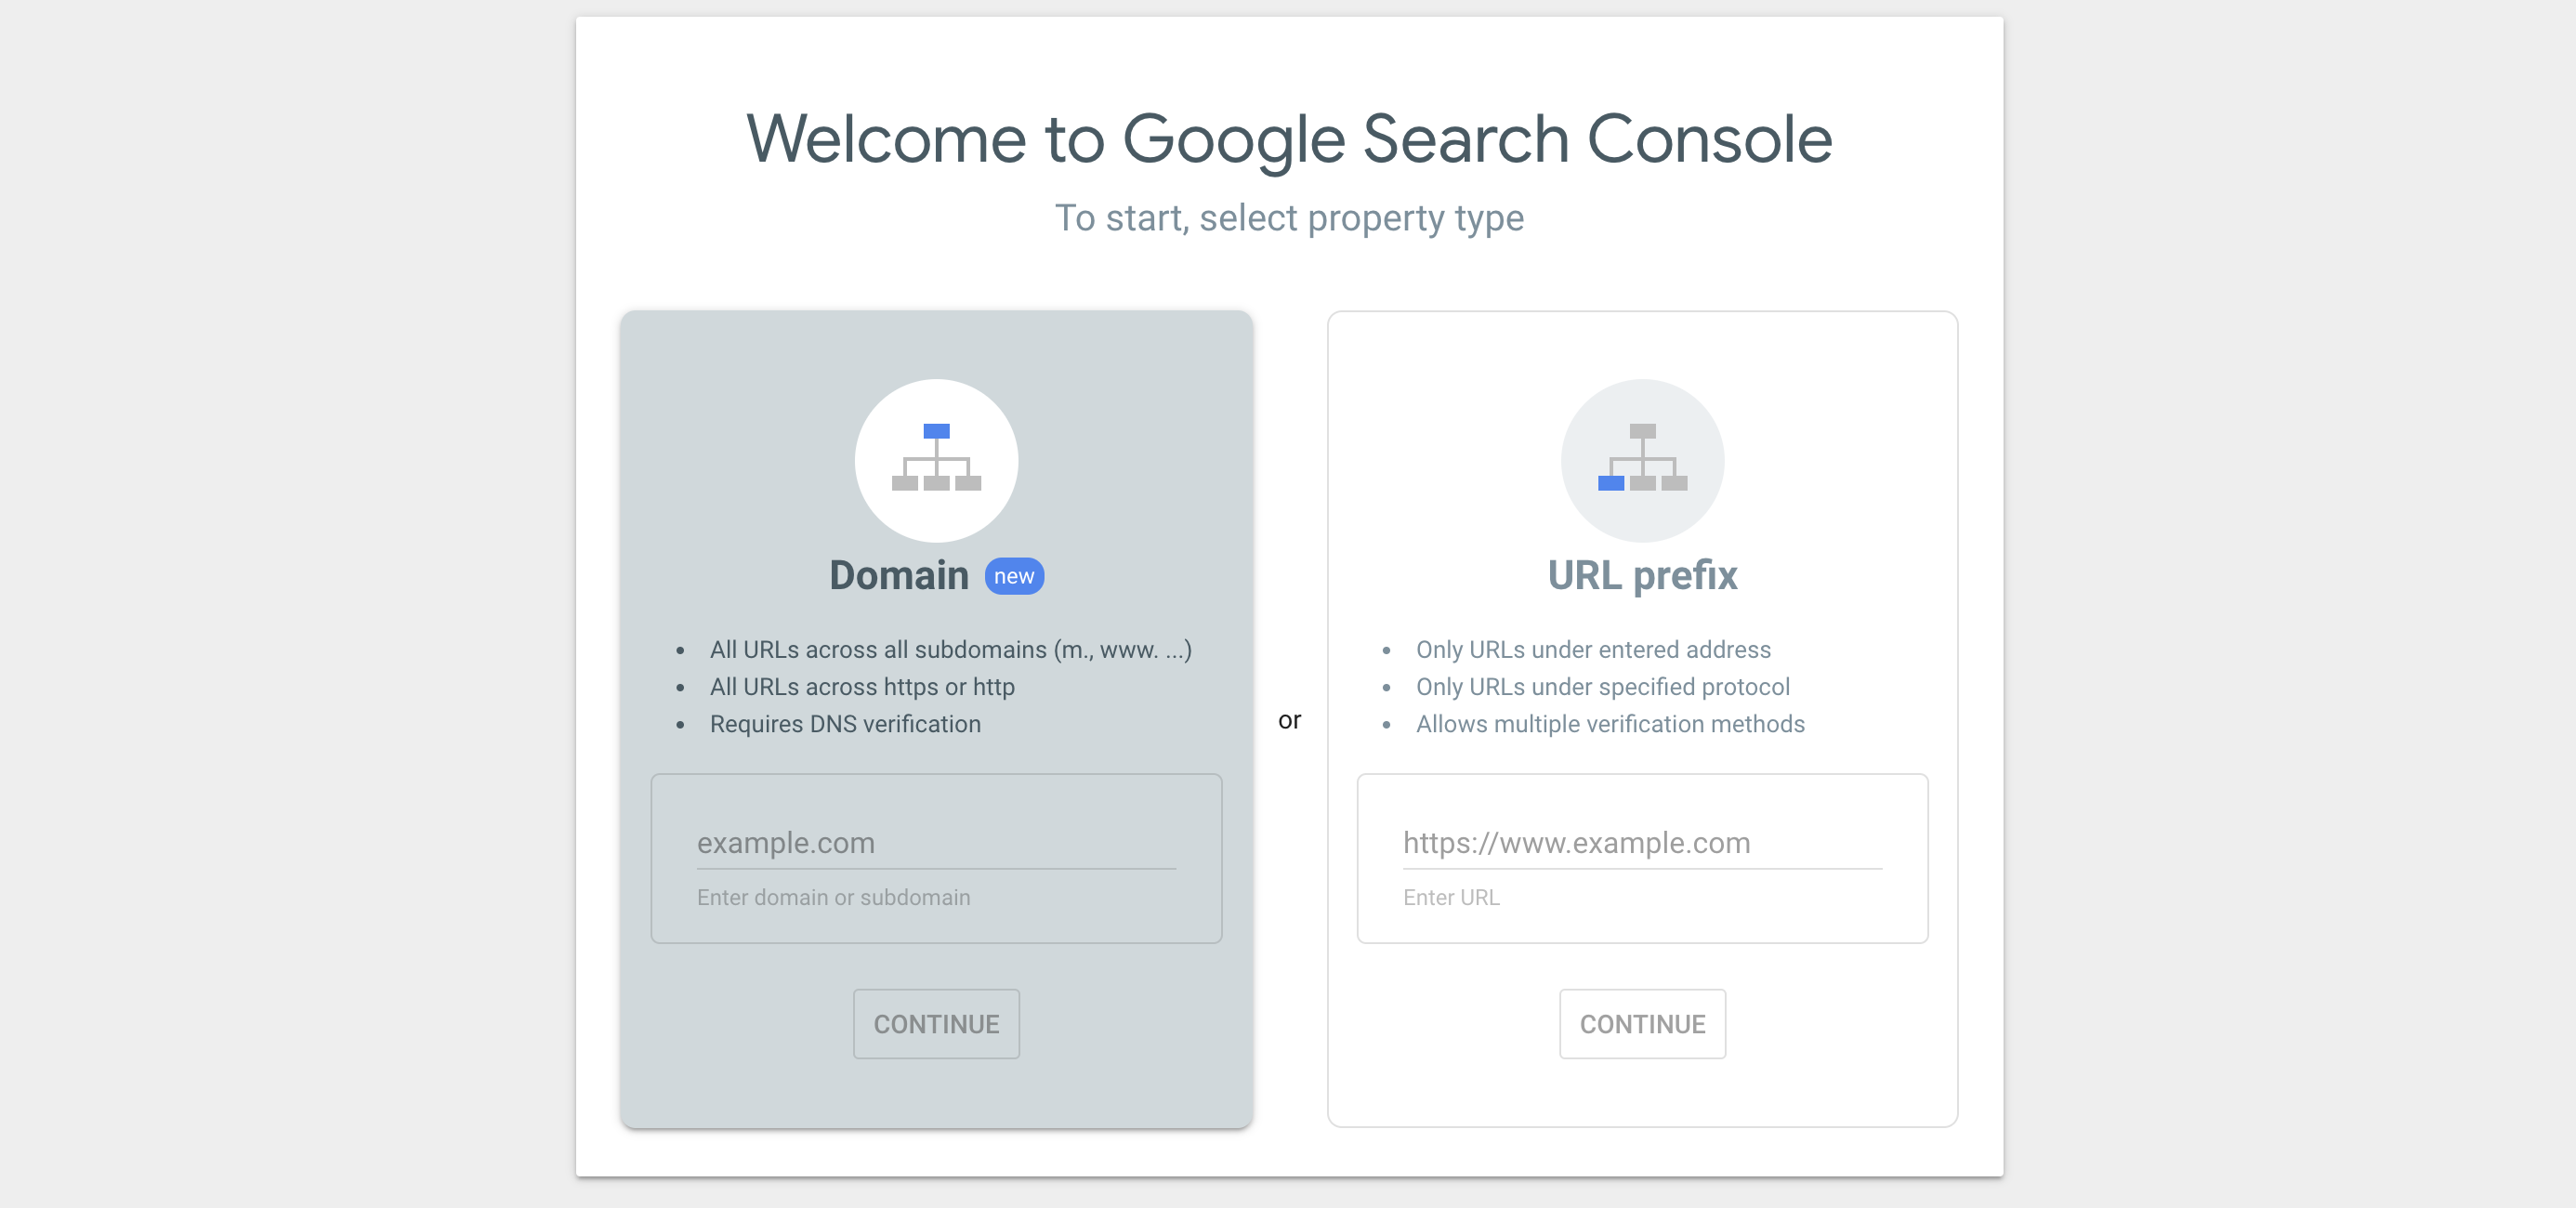 retroactive data is available in google search console